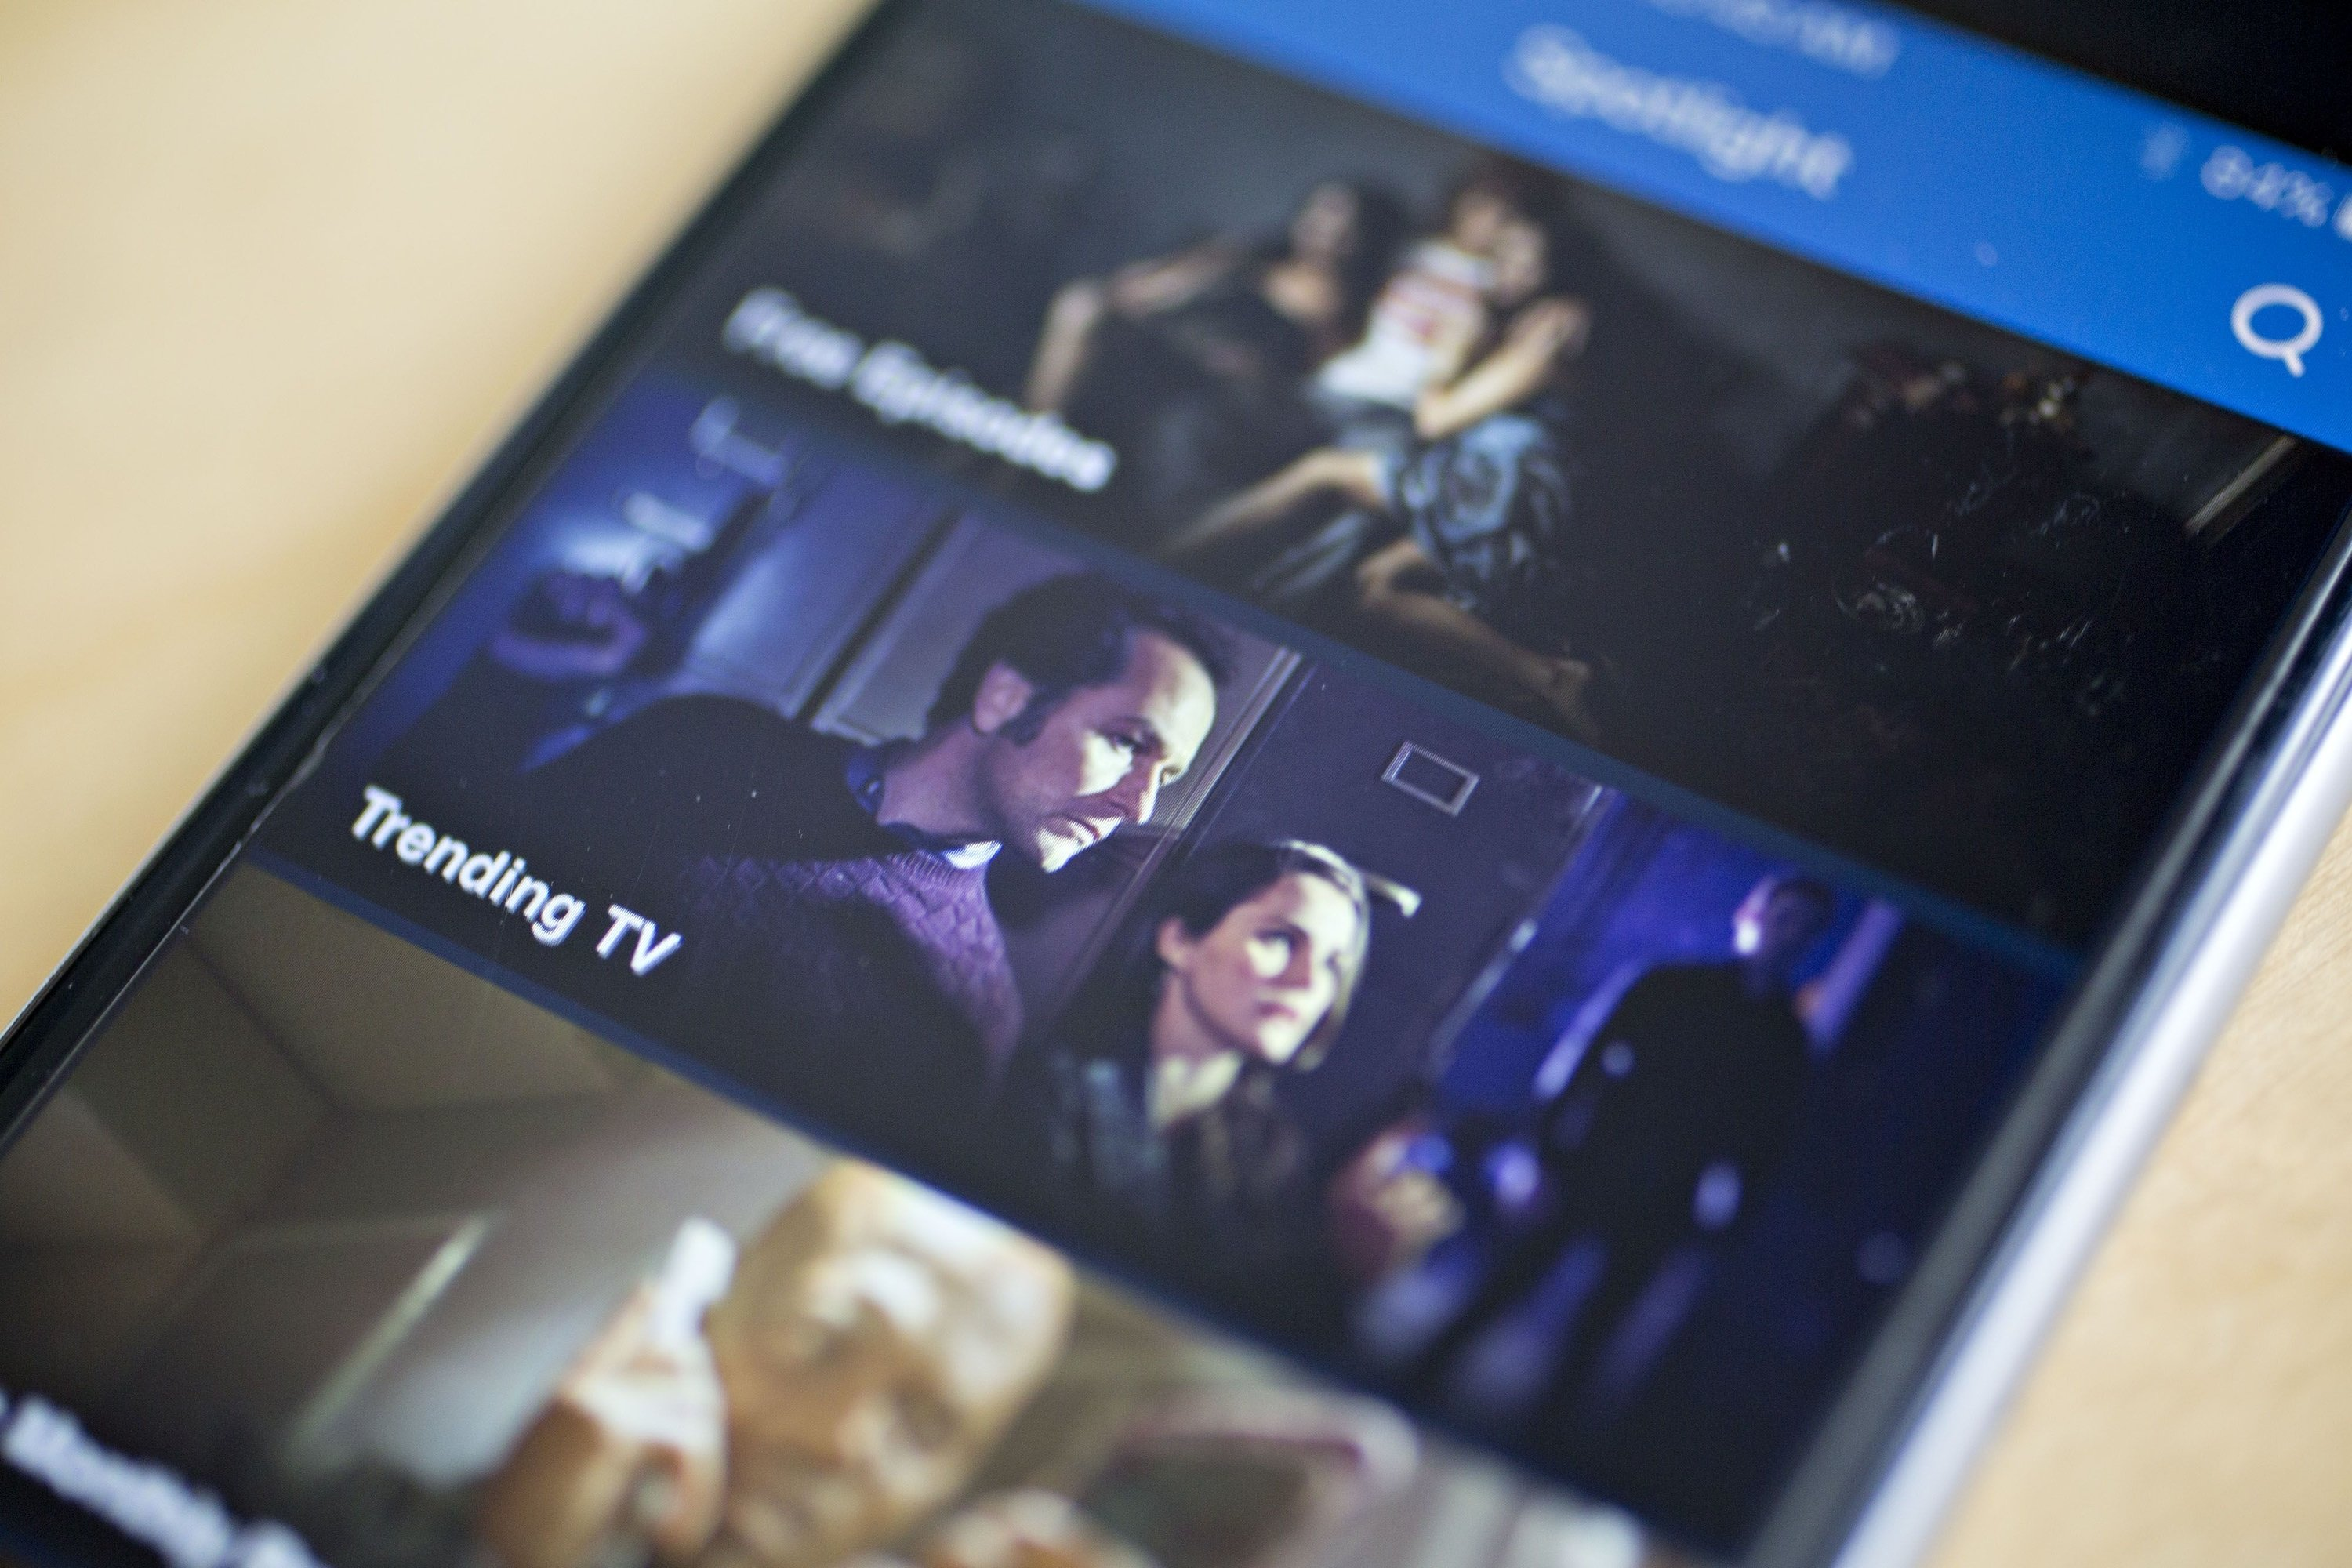 Walmart to sell Vudu streaming service to Comcast's Fandango